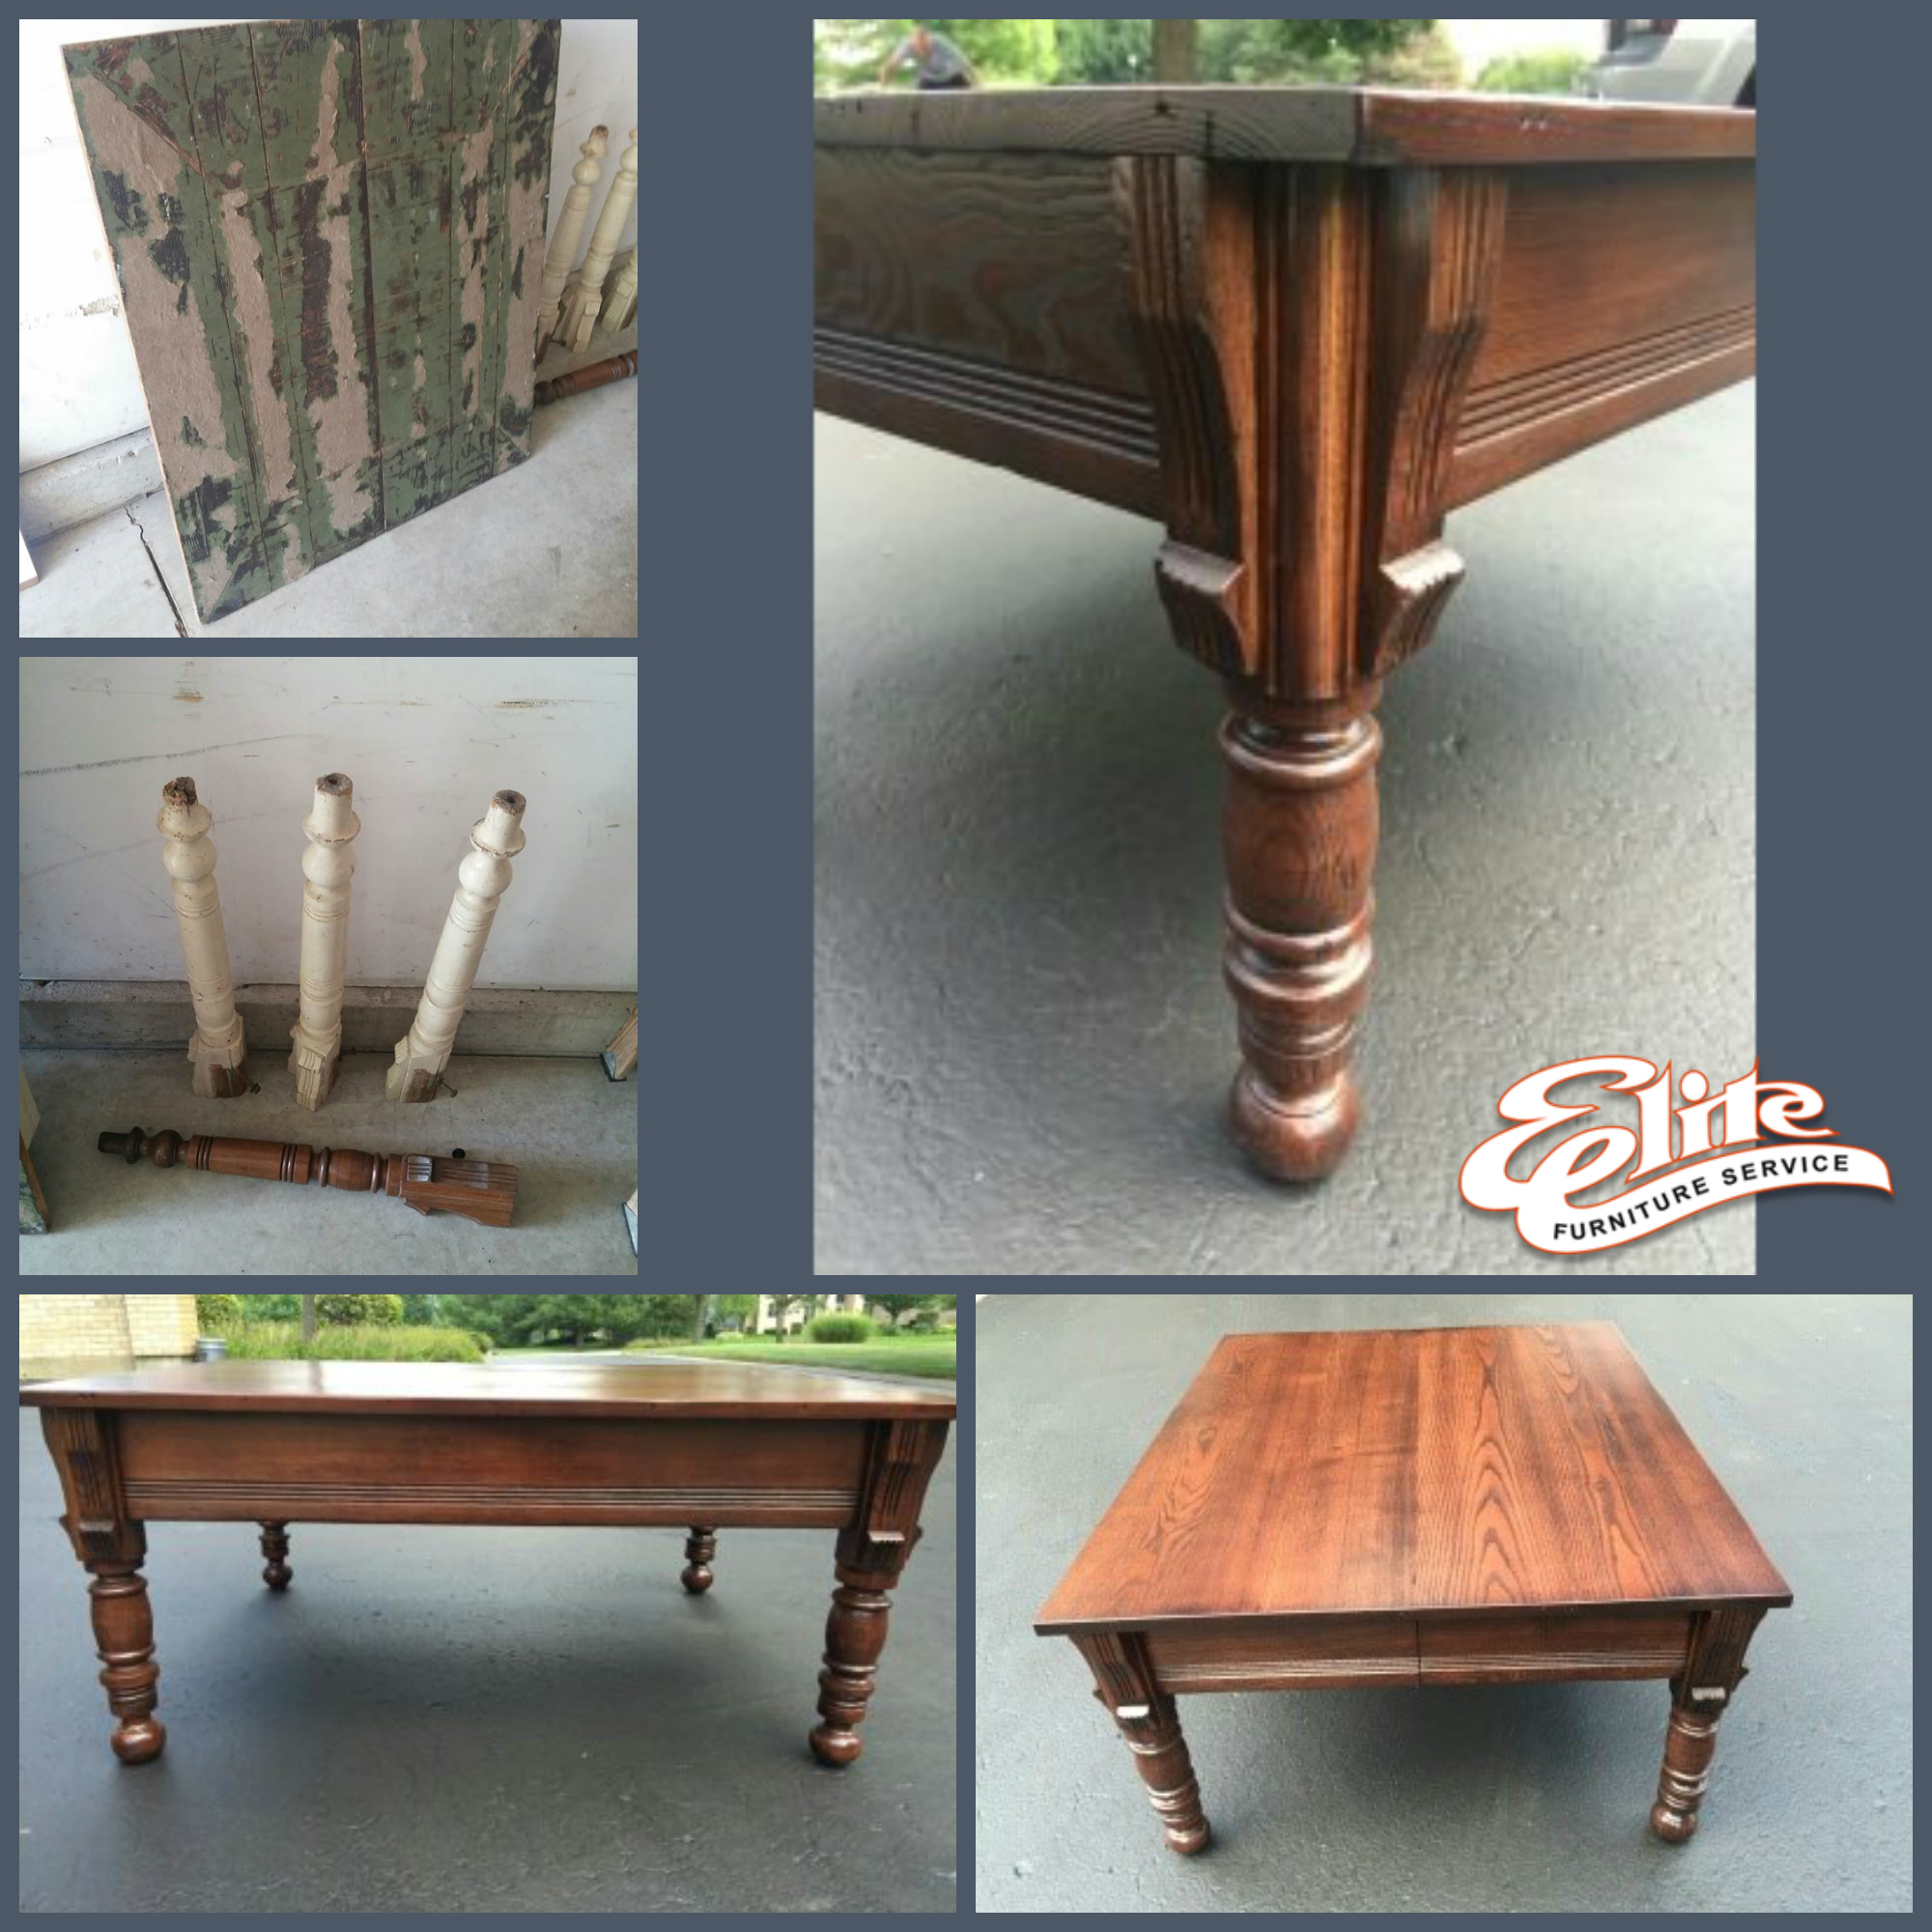 Before And After Furniture Restorations